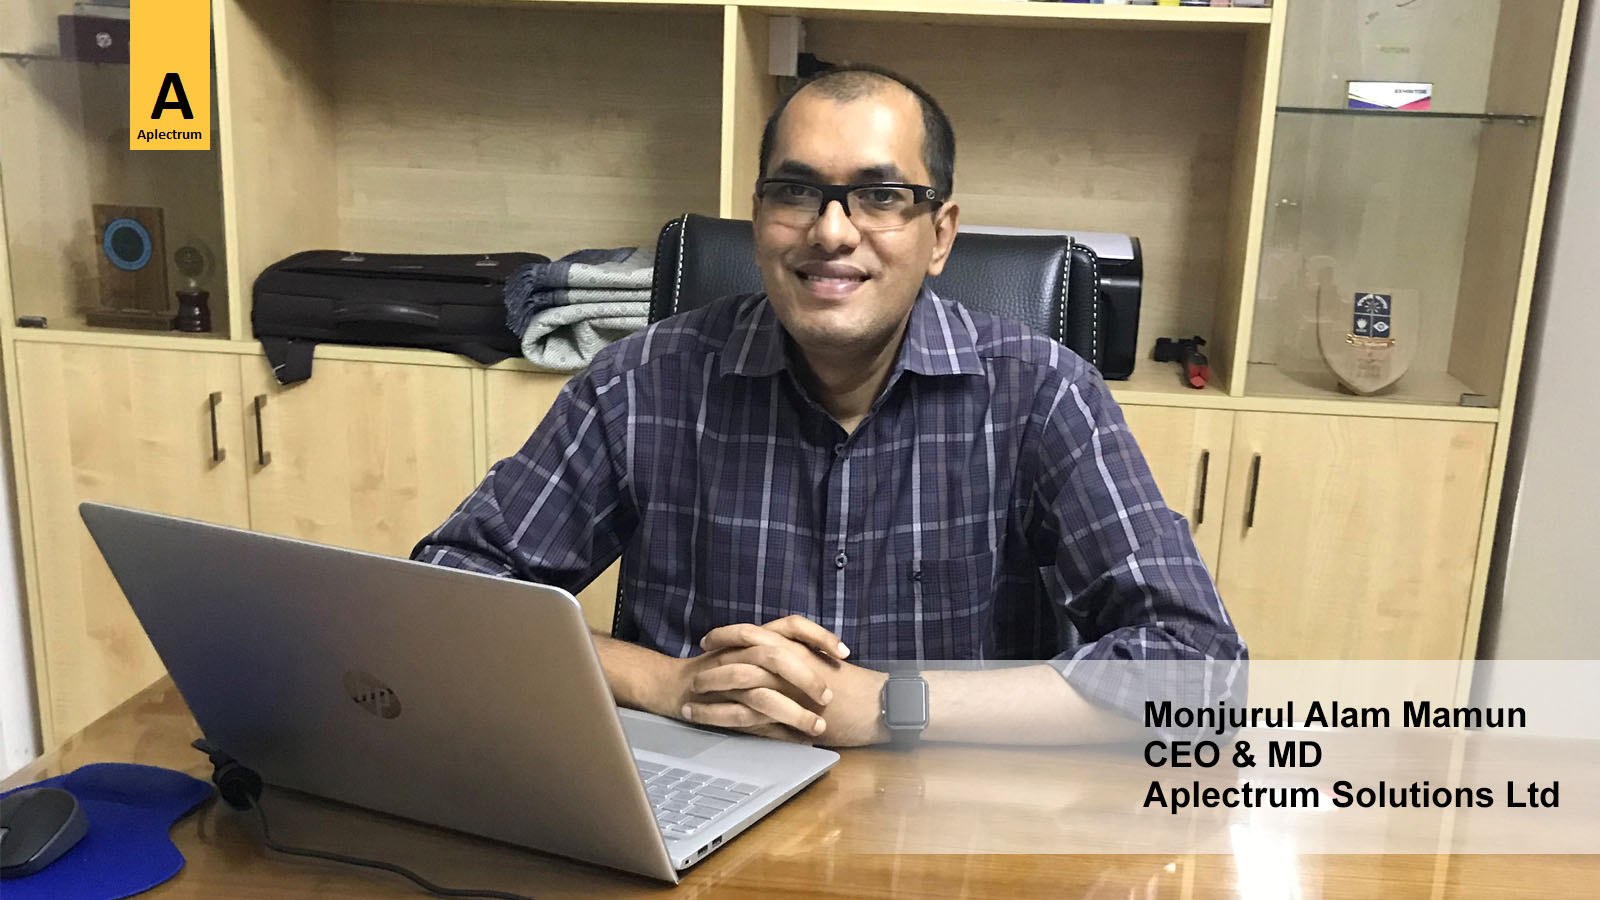 Monjurul Alam Mamun, CEO & MD of the Aplectrum Solutions Ltd